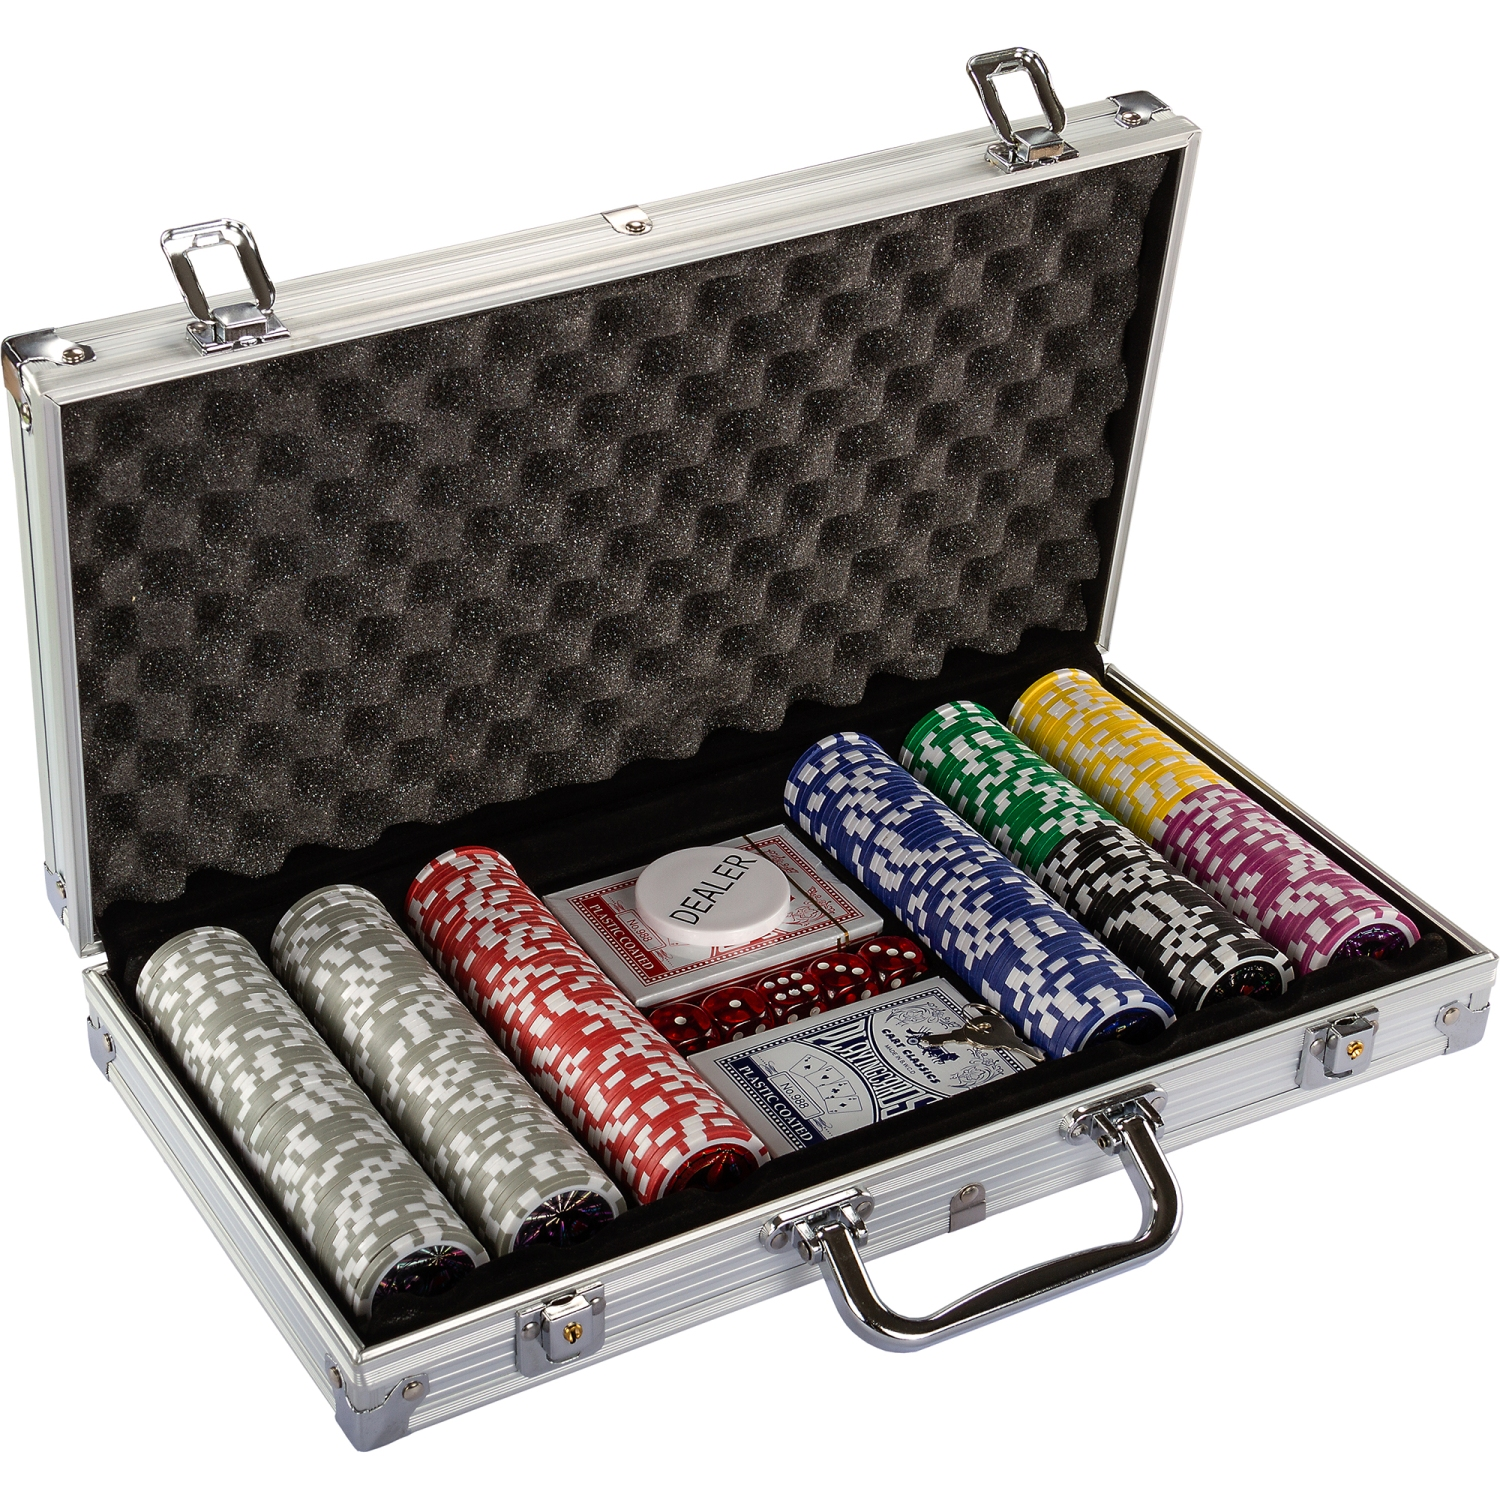 pokerkoffer pokerset poker set laser pokerchips 300 chips alu koffer jetons ebay. Black Bedroom Furniture Sets. Home Design Ideas